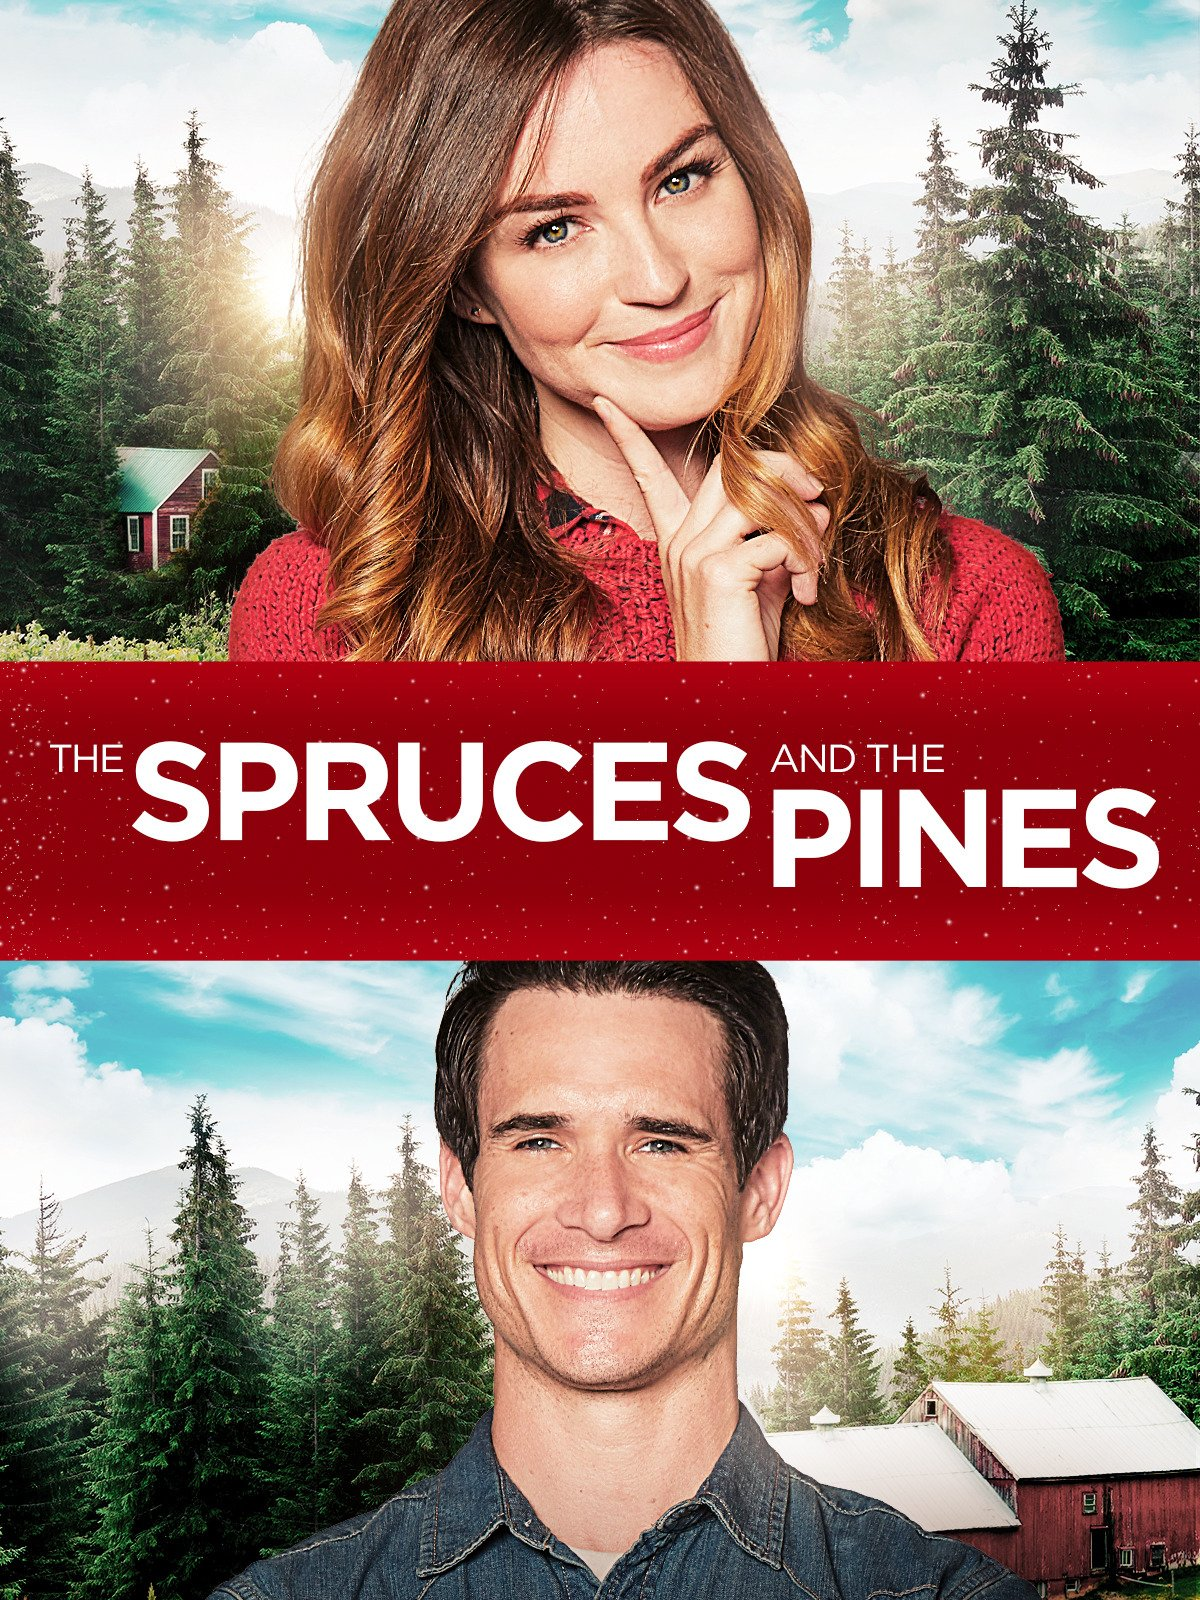 Amazon.com: The Spruces and the Pines: Jonna Walsh, Nick Ballard ...